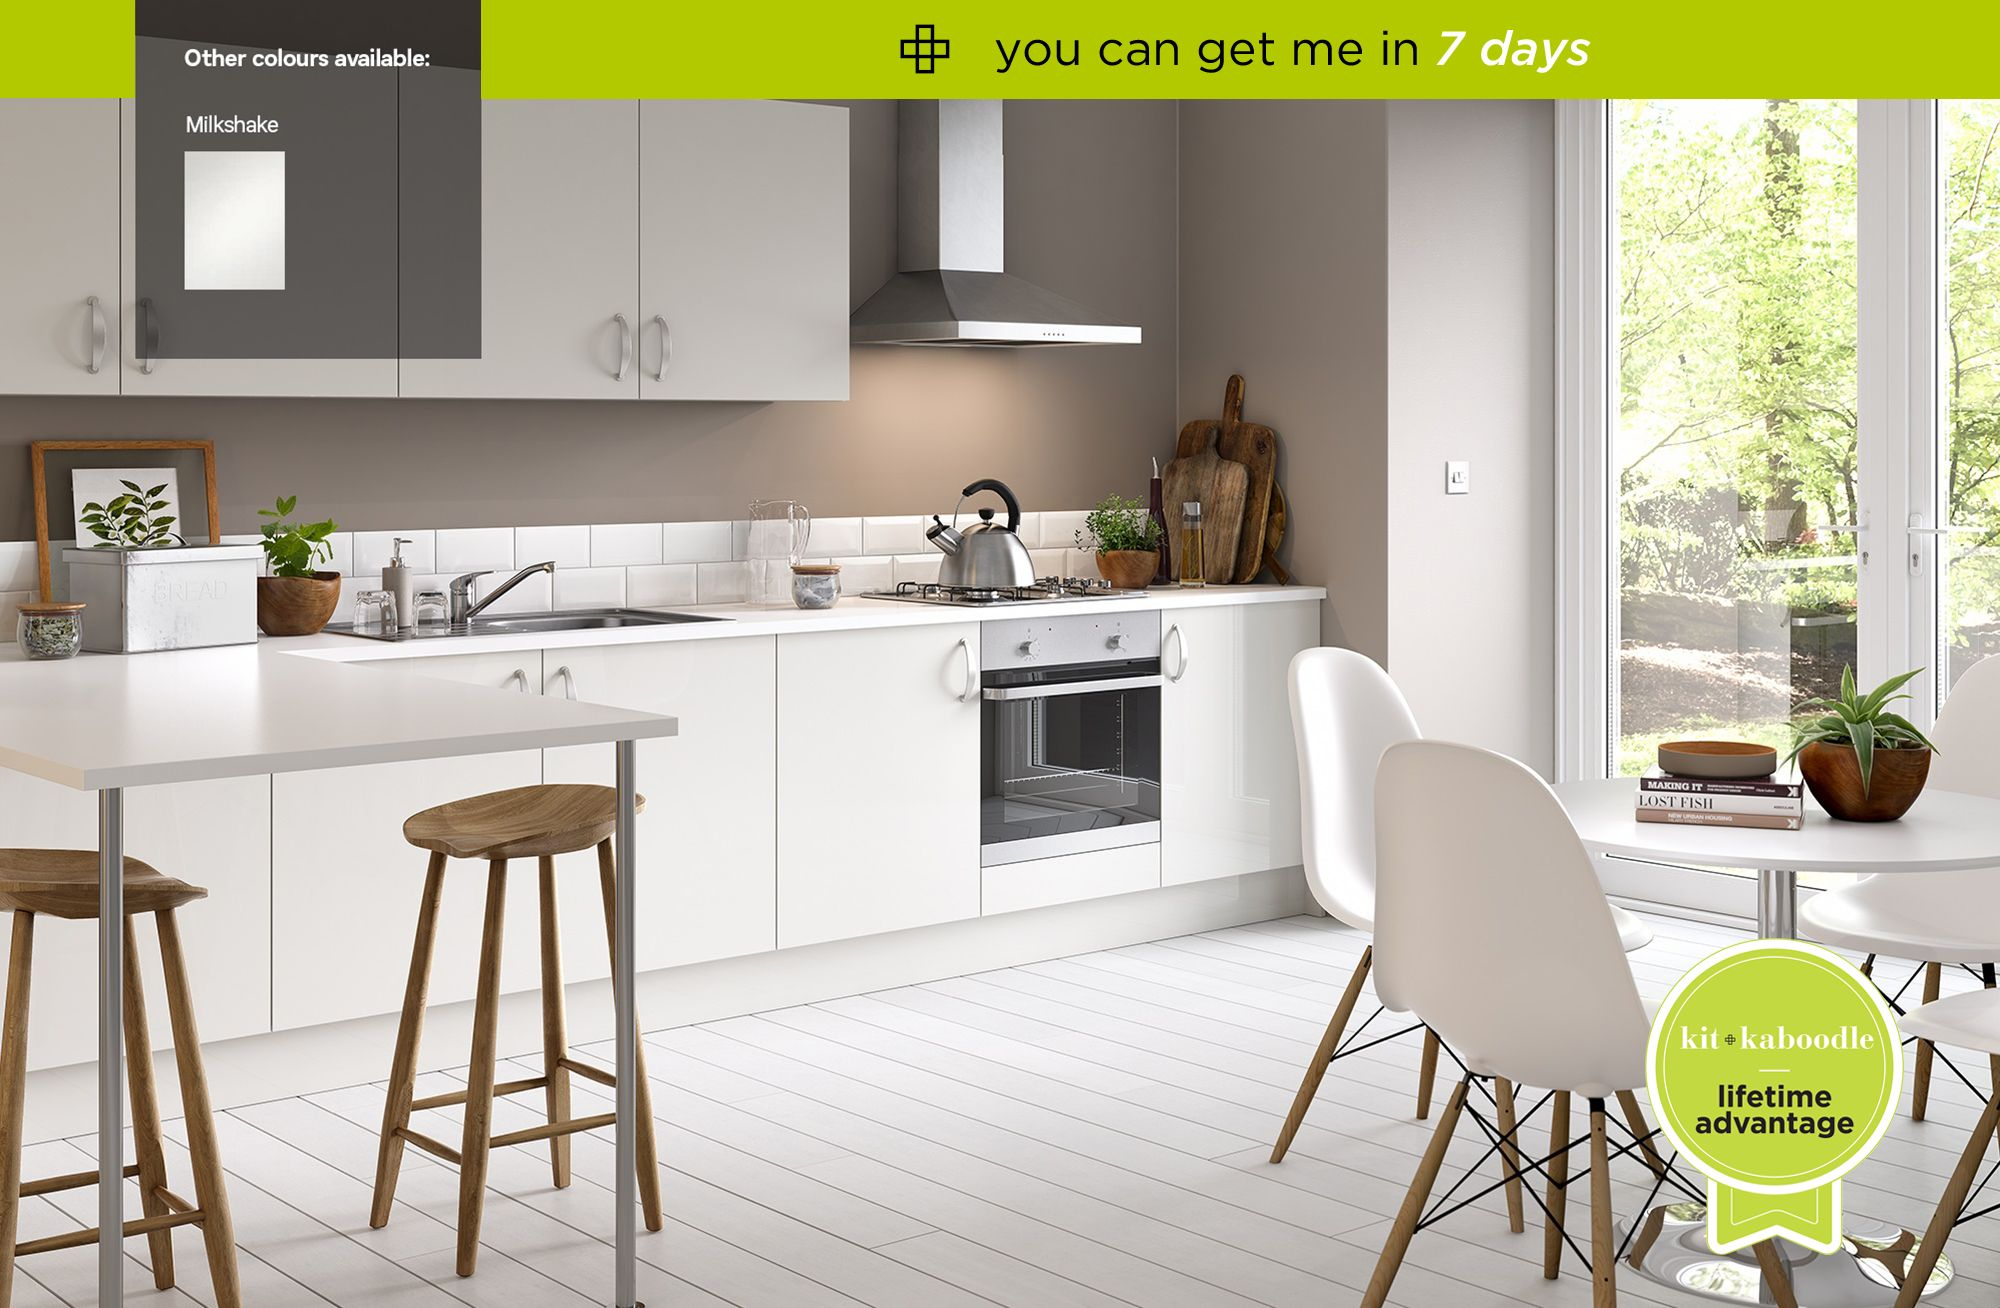 Inspiration gallery at homebase.co.uk kitchens pinterest